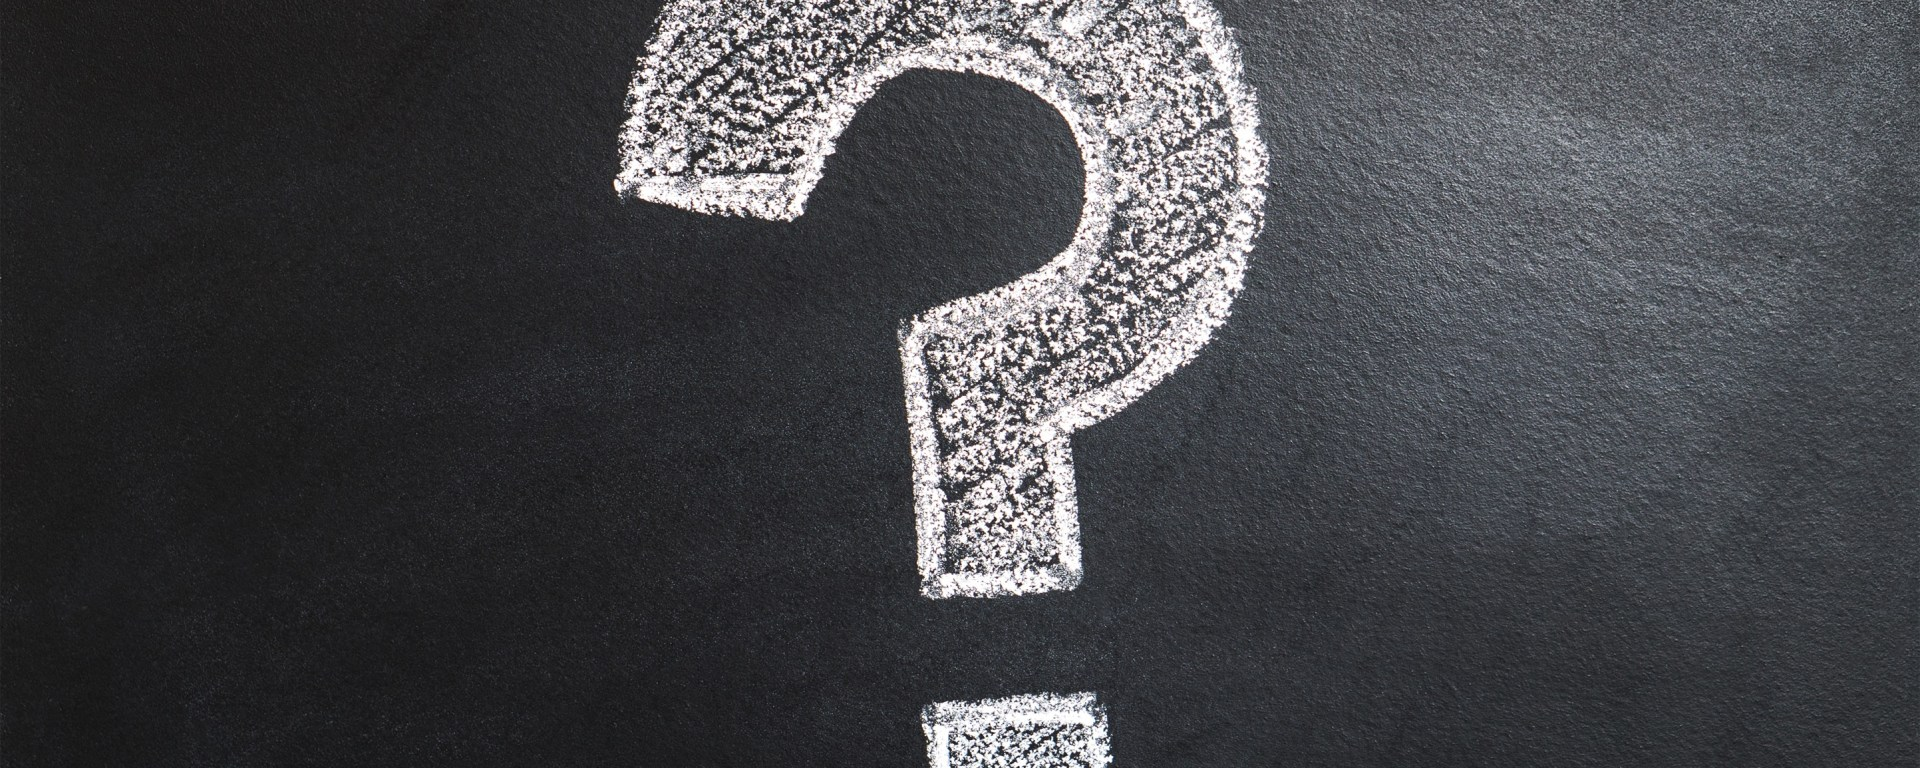 A question mark drawn in white chalk on a blackboard.